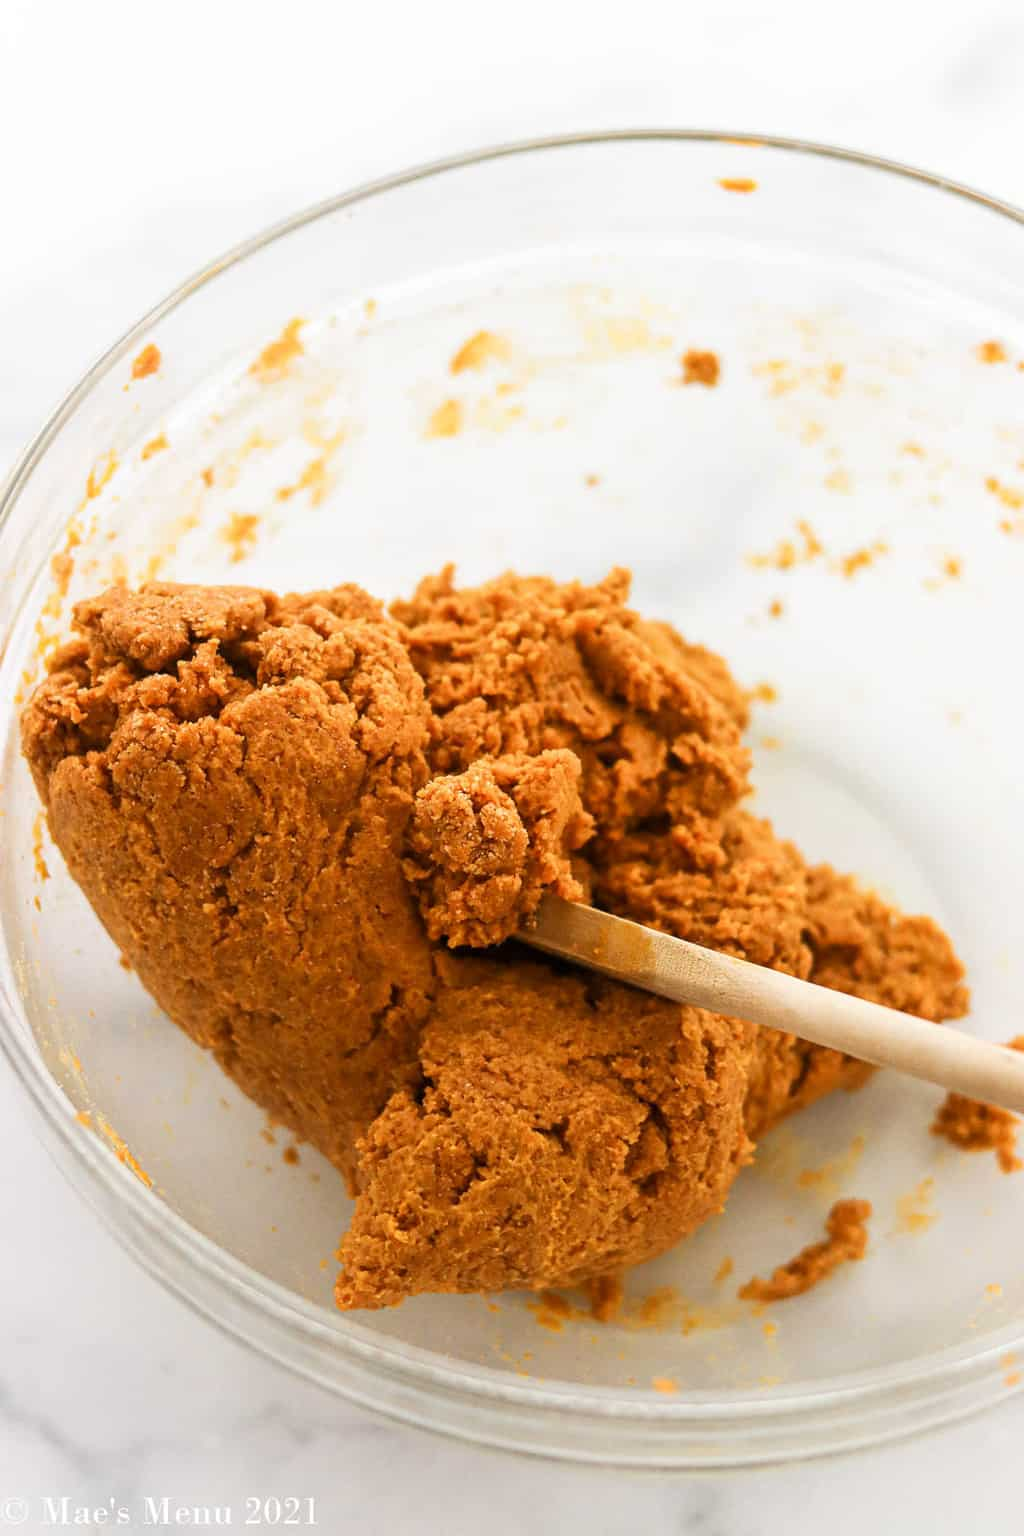 The peanut butter pumpkin dough in a mixing bowl with a wooden spoon